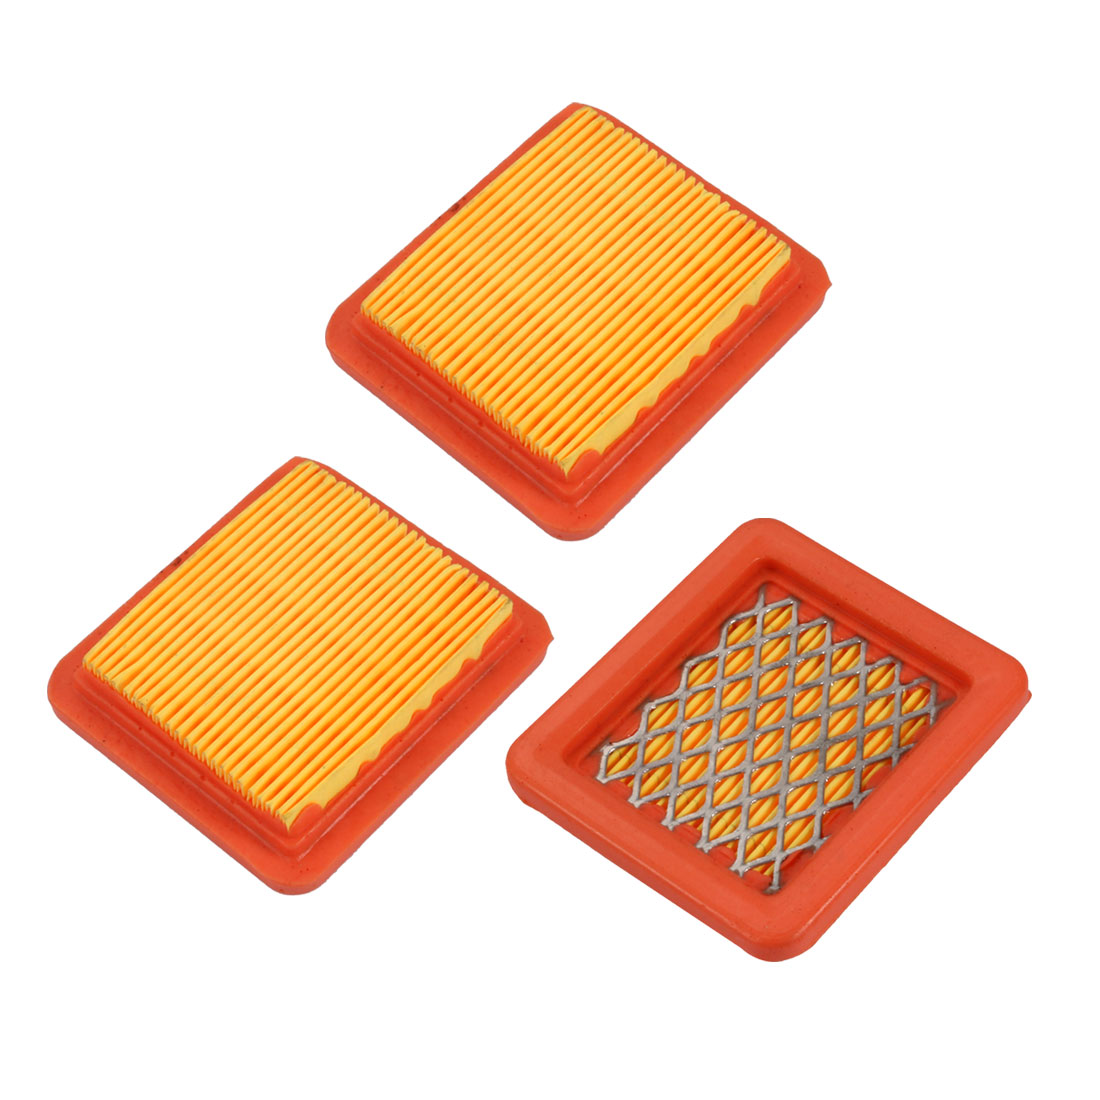 3pcs New Replacement Extra Guard Panel Engine GX35 Air Filter Cleaner Accessory